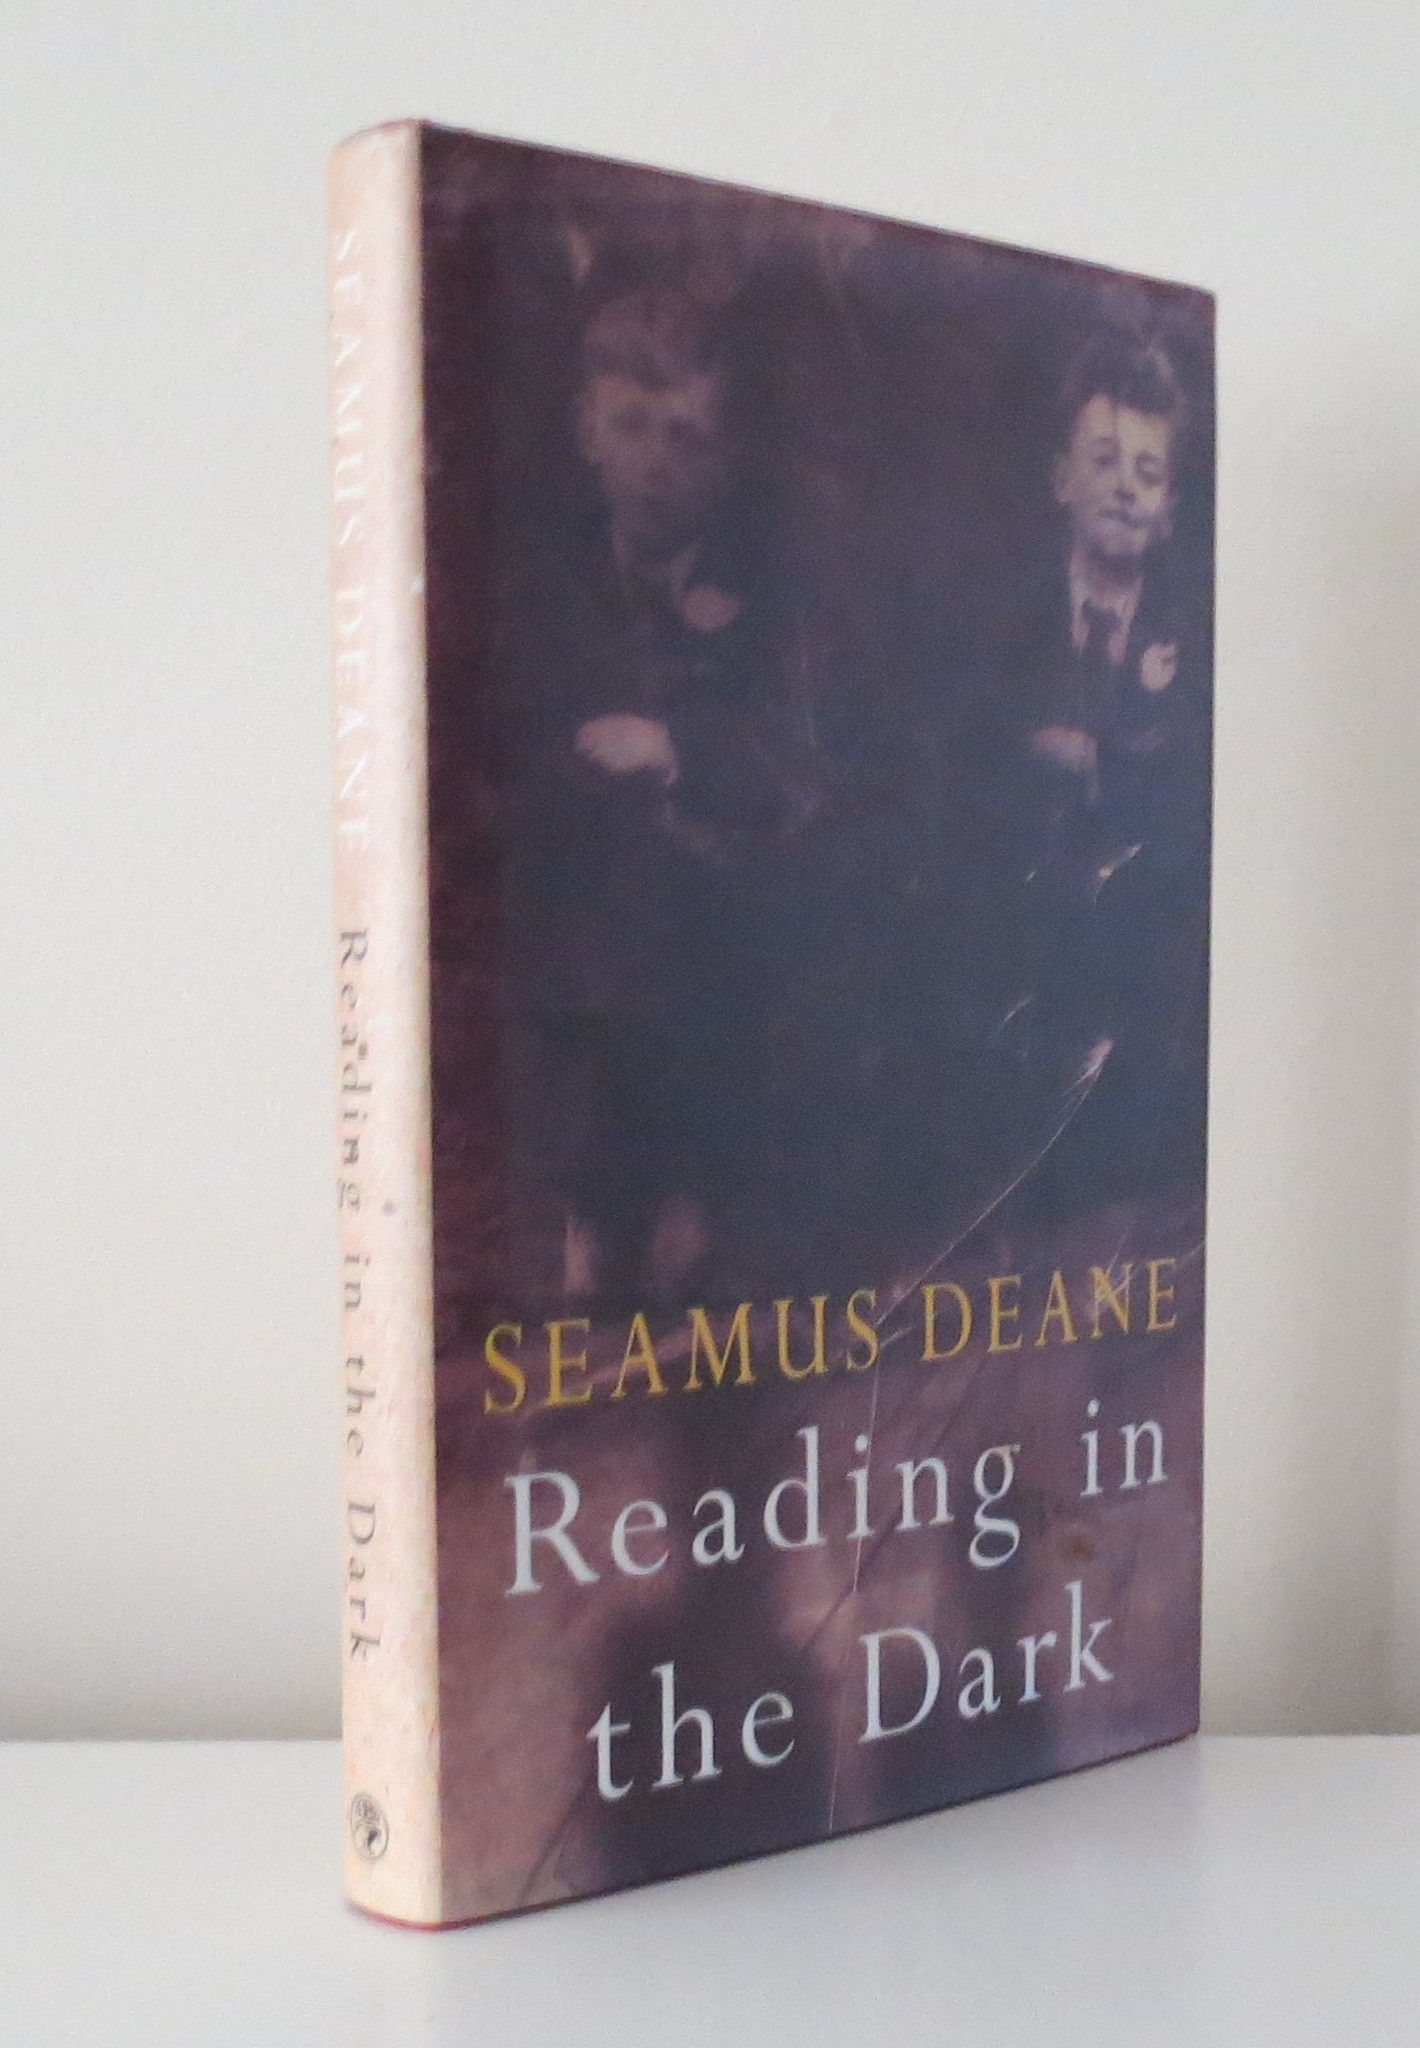 politics in reading in the dark by seamus deane Reading in the dark: a novel [seamus deane] on amazoncom free shipping on qualifying offers a new york times notable book winner of the guardian  fiction prize winner of the irish times fiction award and international award a swift and masterful transformation of family griefs and political violence into something at once rhapsodic and heartbreaking.